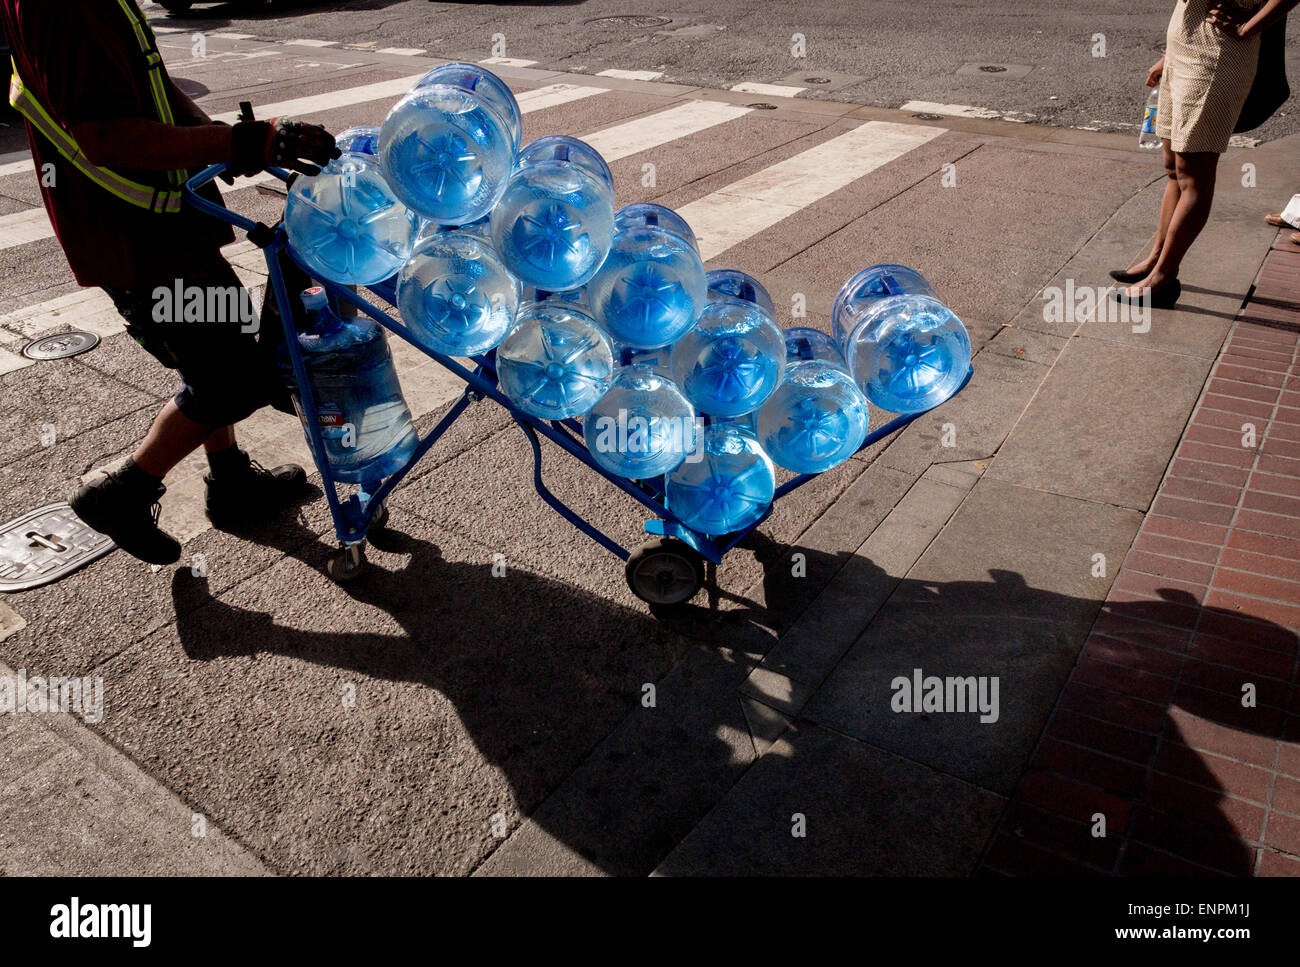 A delivery person wheels a cart of bottled water across a San Francisco street. - Stock Image